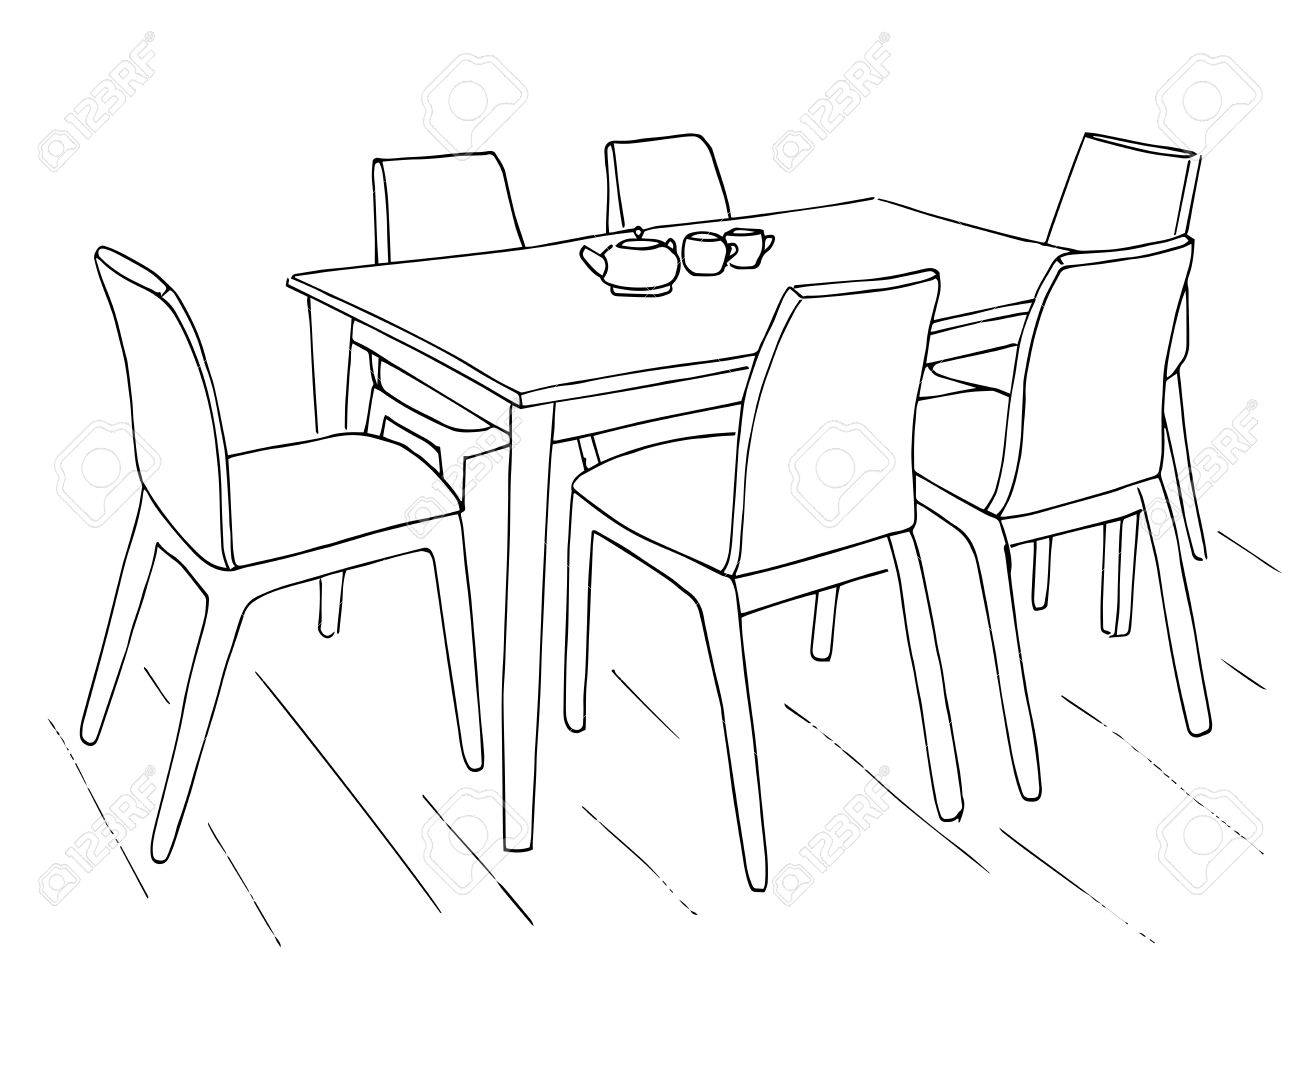 1300x1085 Table And Chairs. On The Table Are Two Cups. Hand Drawn Sketch